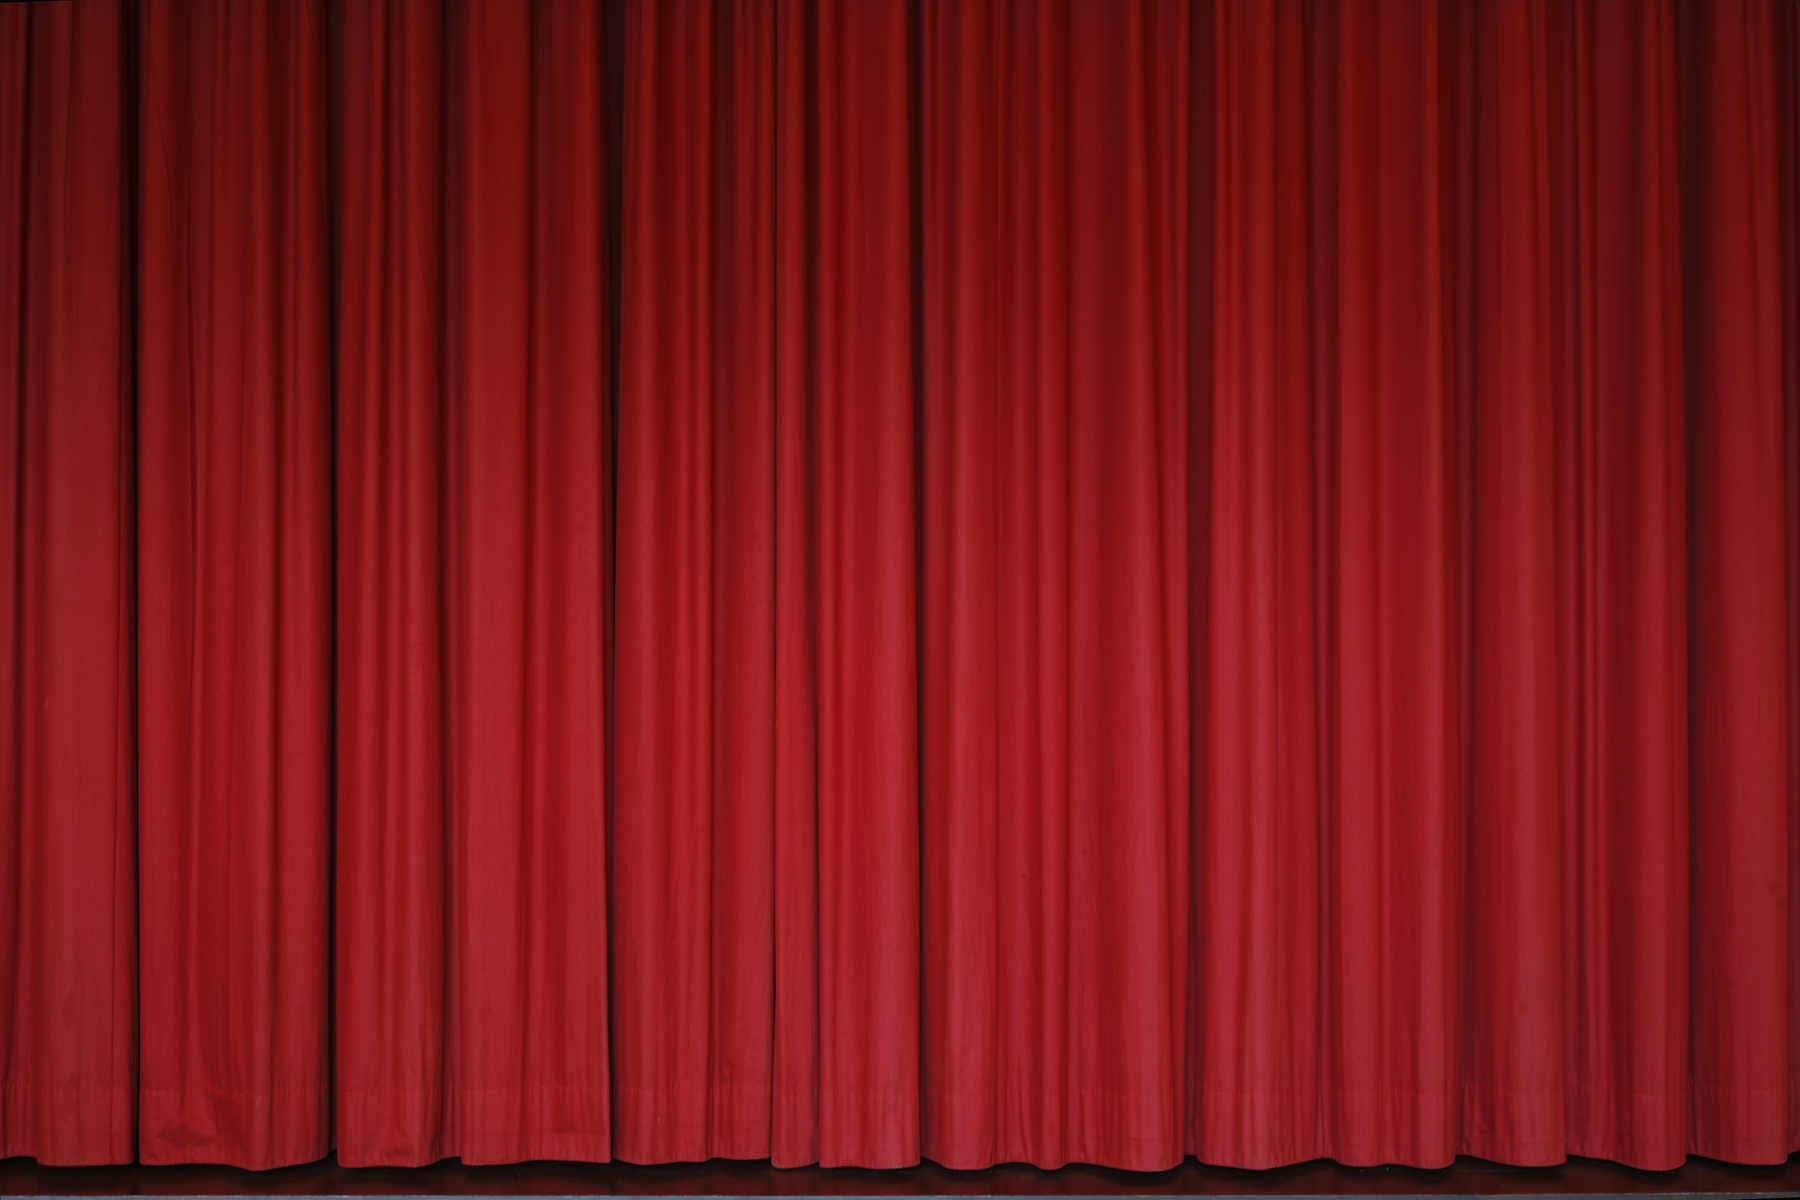 Free Theater Download Free Clip Art Free Clip Art on